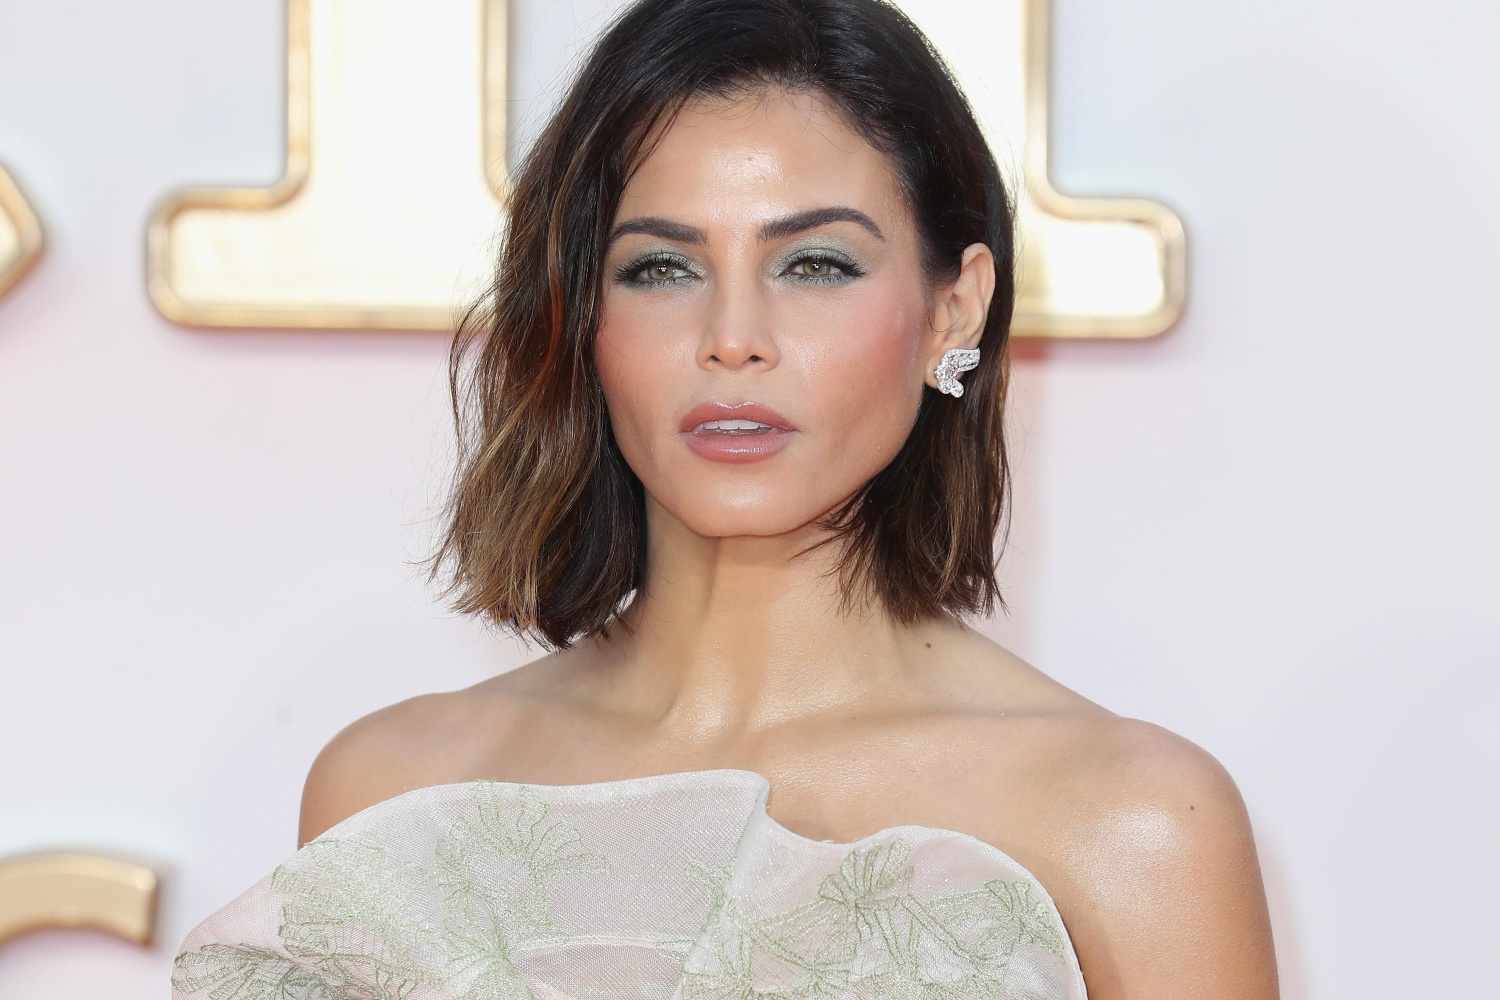 Jenna Dewan Removes Tatum From Her Last Name On Social Media